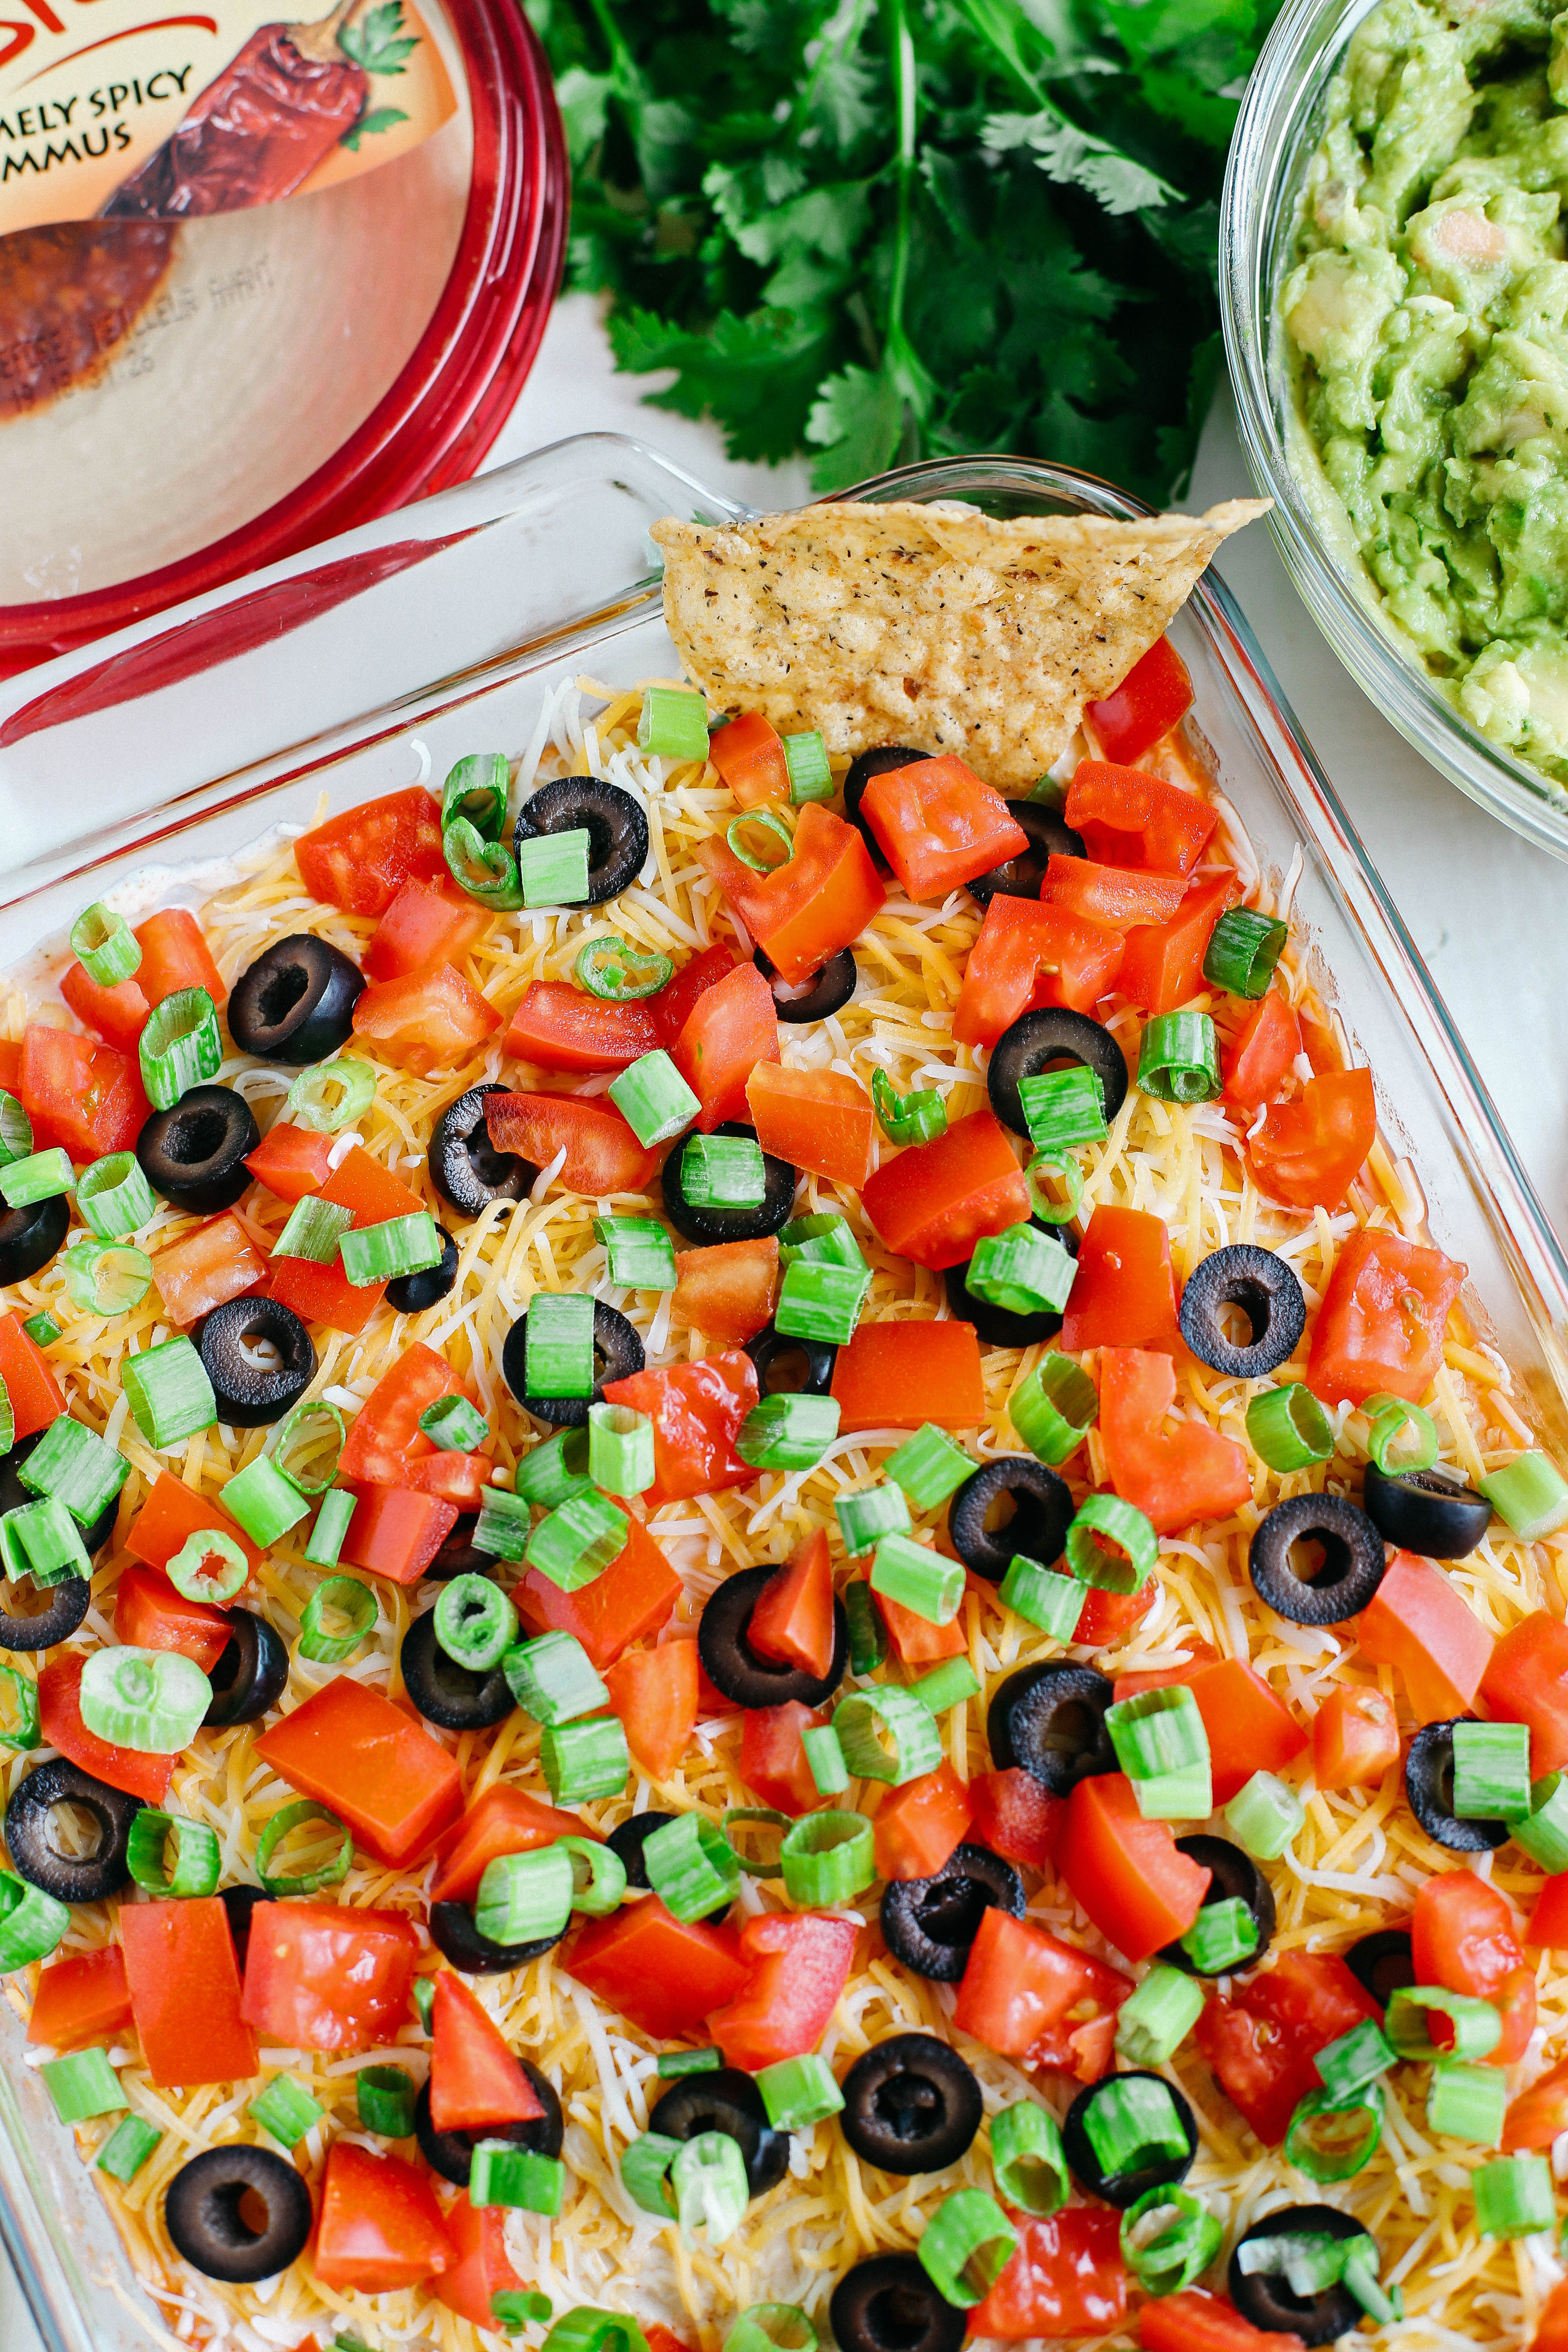 This Healthier 7 Layer Spicy Taco Dip is a lighter take on your favorite party appetizer perfect for any gathering or event that you can enjoy guilt-free!